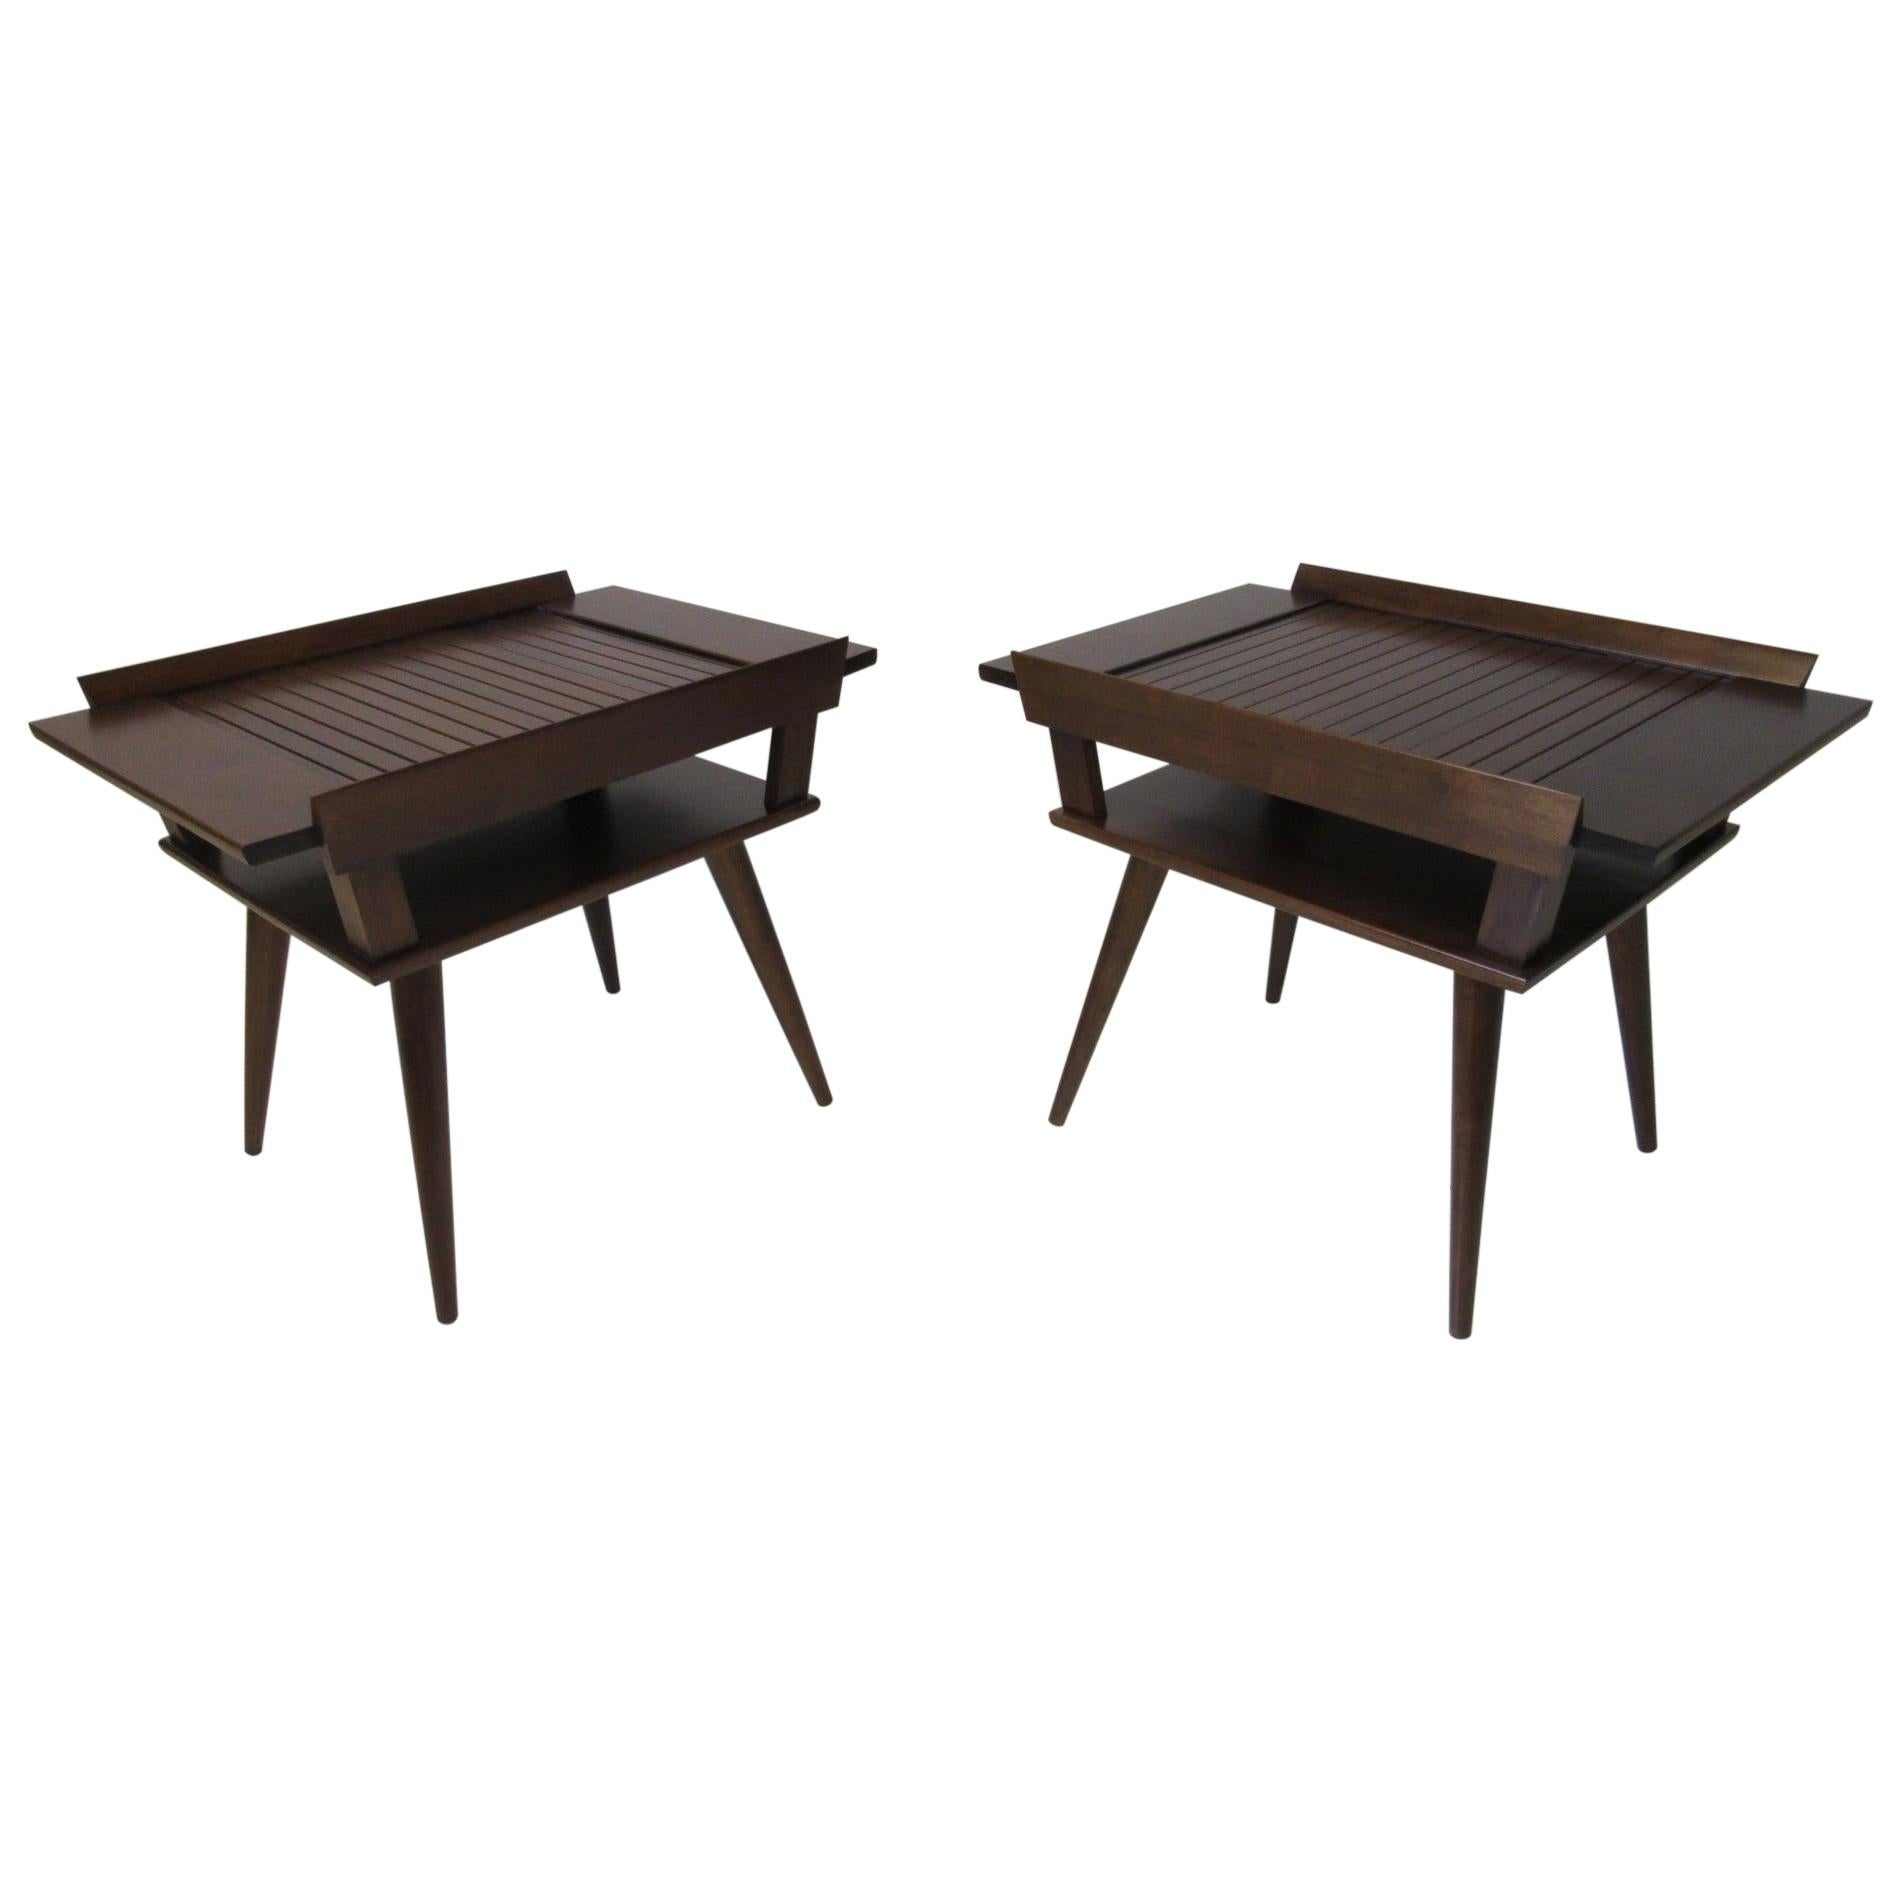 Leslie Diamond Modernmates Side Tables / Nightstands for Conant Ball